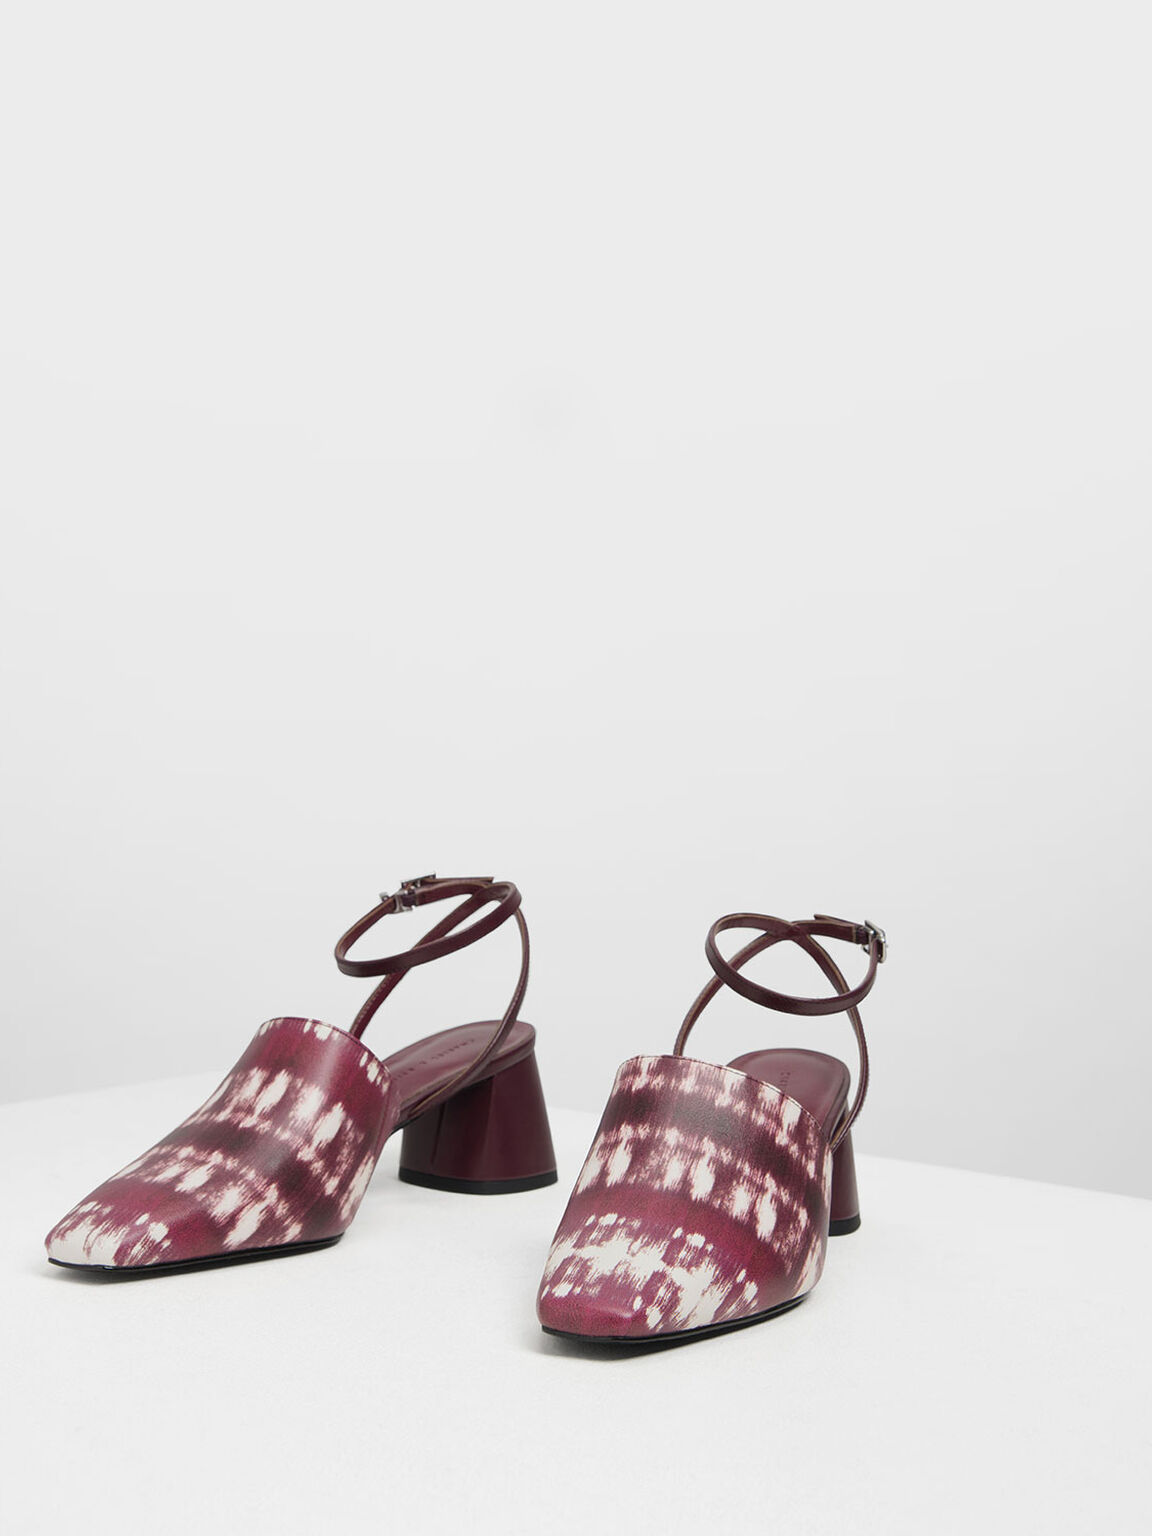 Closed Toe Block Heel Printed Sandals, Burgundy, hi-res